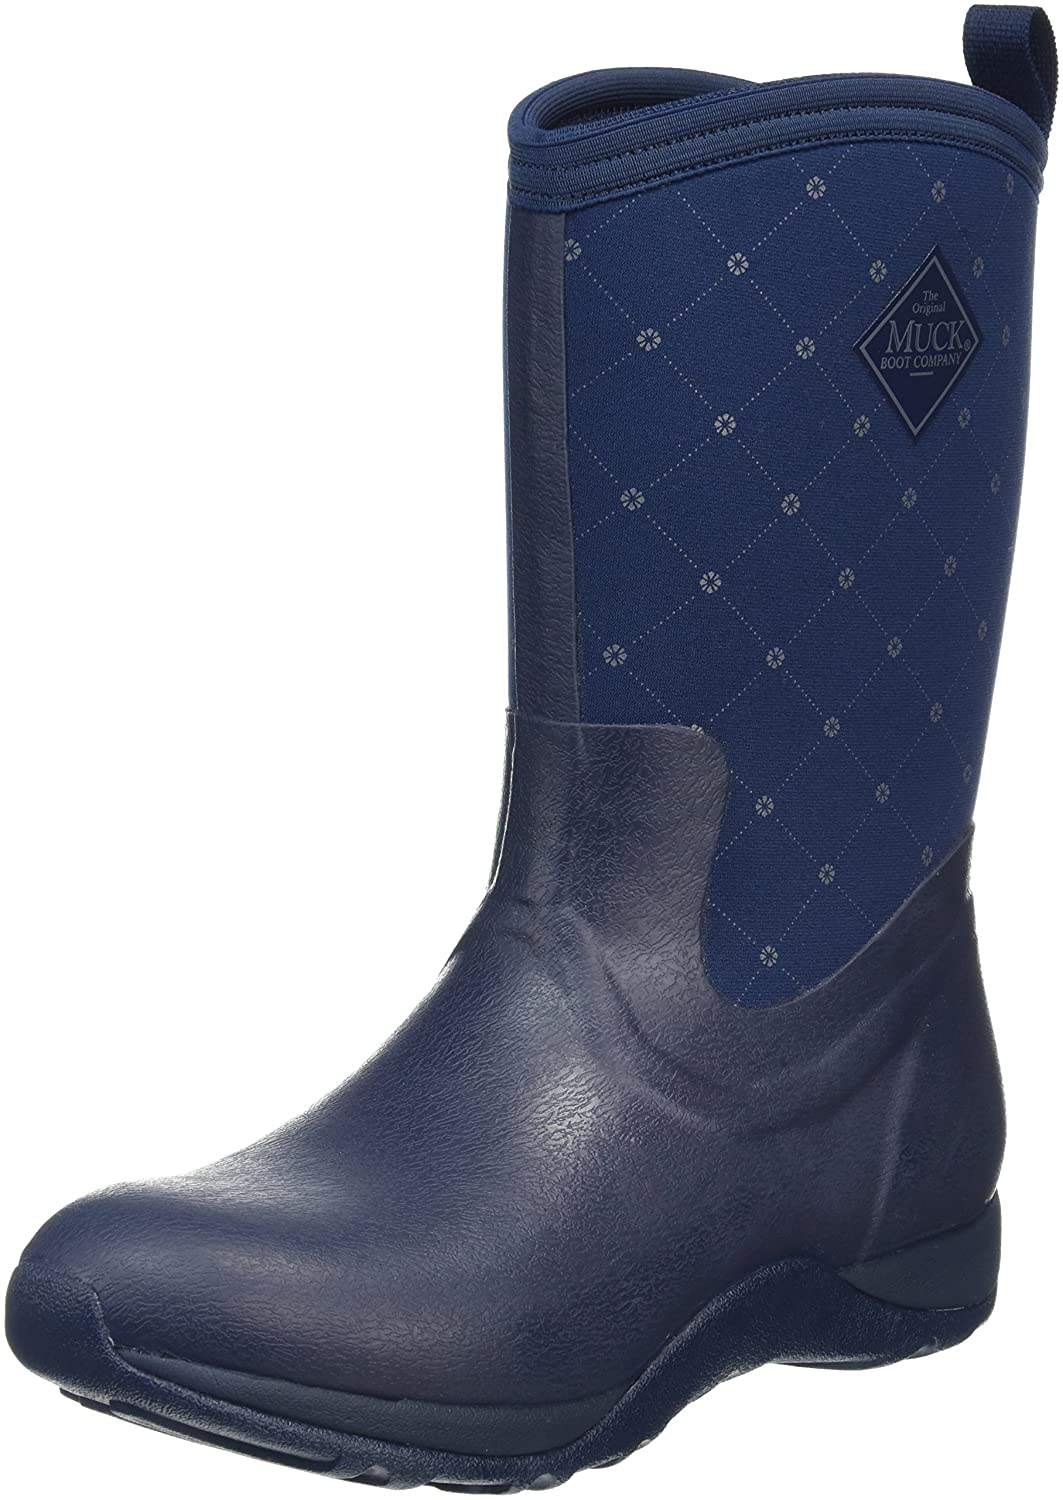 Muck Boot Snow Women's Arctic Weekend Mid Snow Boot B01J6MBHLI 11 B(M) US|Navy Quilt 25dcfb